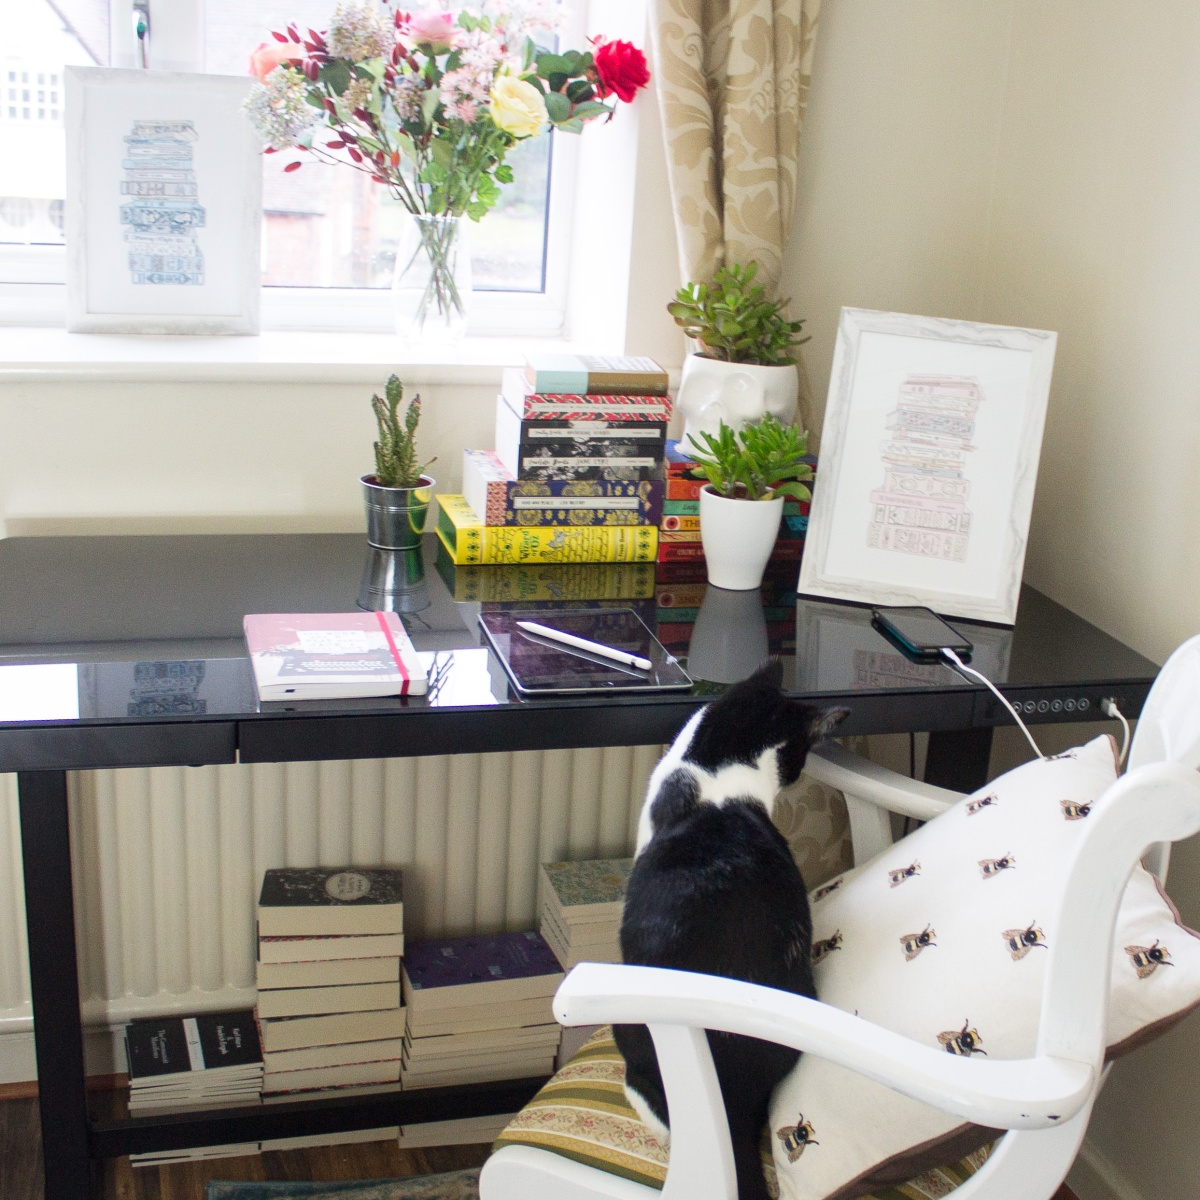 Black and white cat at a writing desk with stacks of books